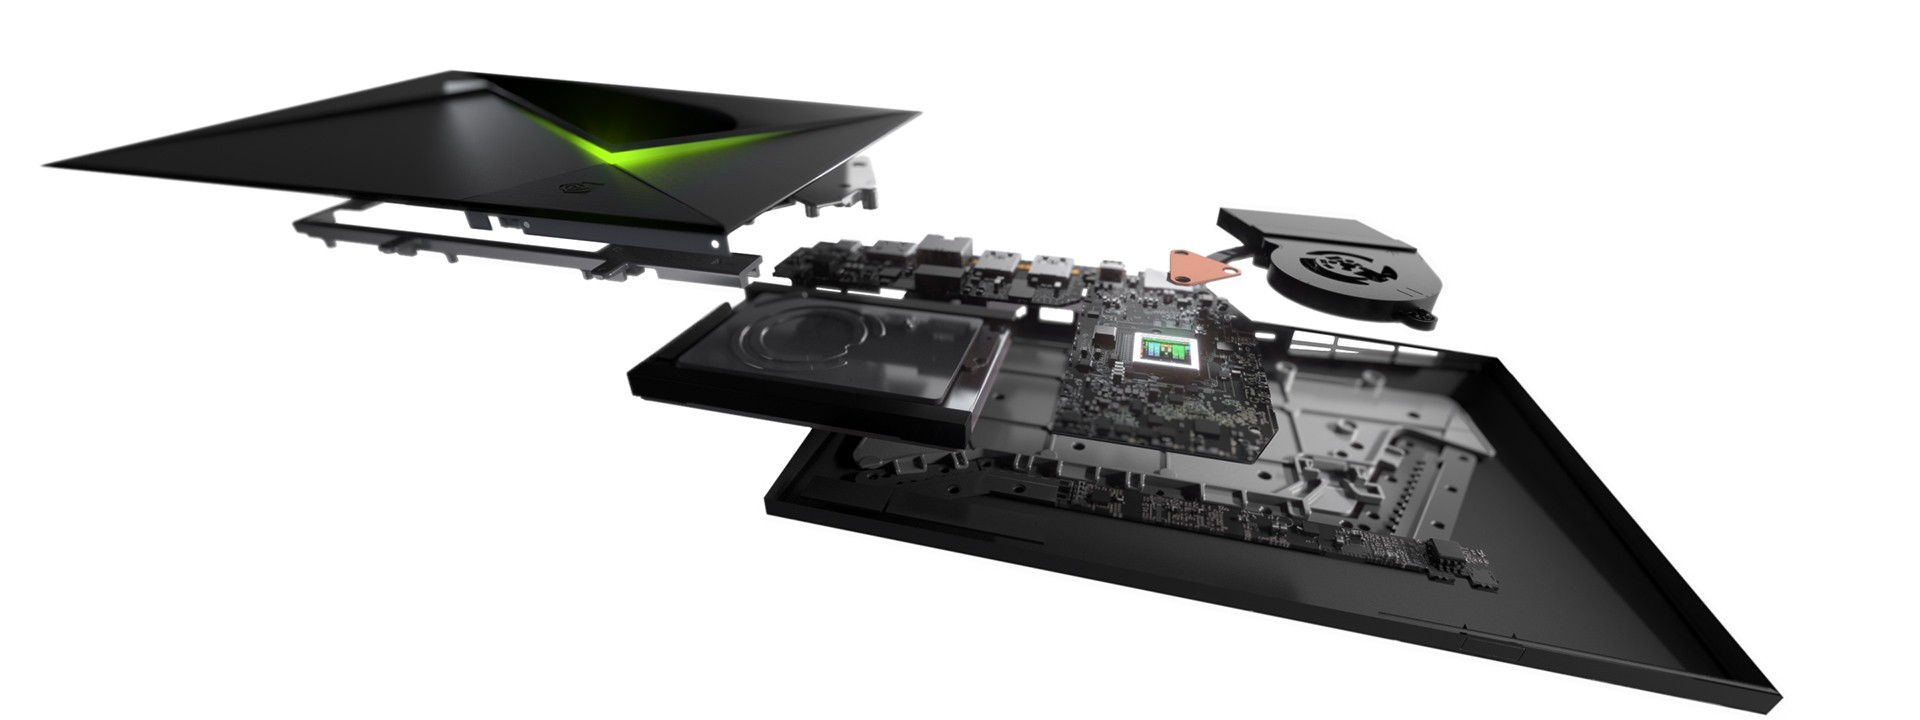 NVIDIA SHIELD Android TV Firmware 3 2 0 Is Up for Grabs